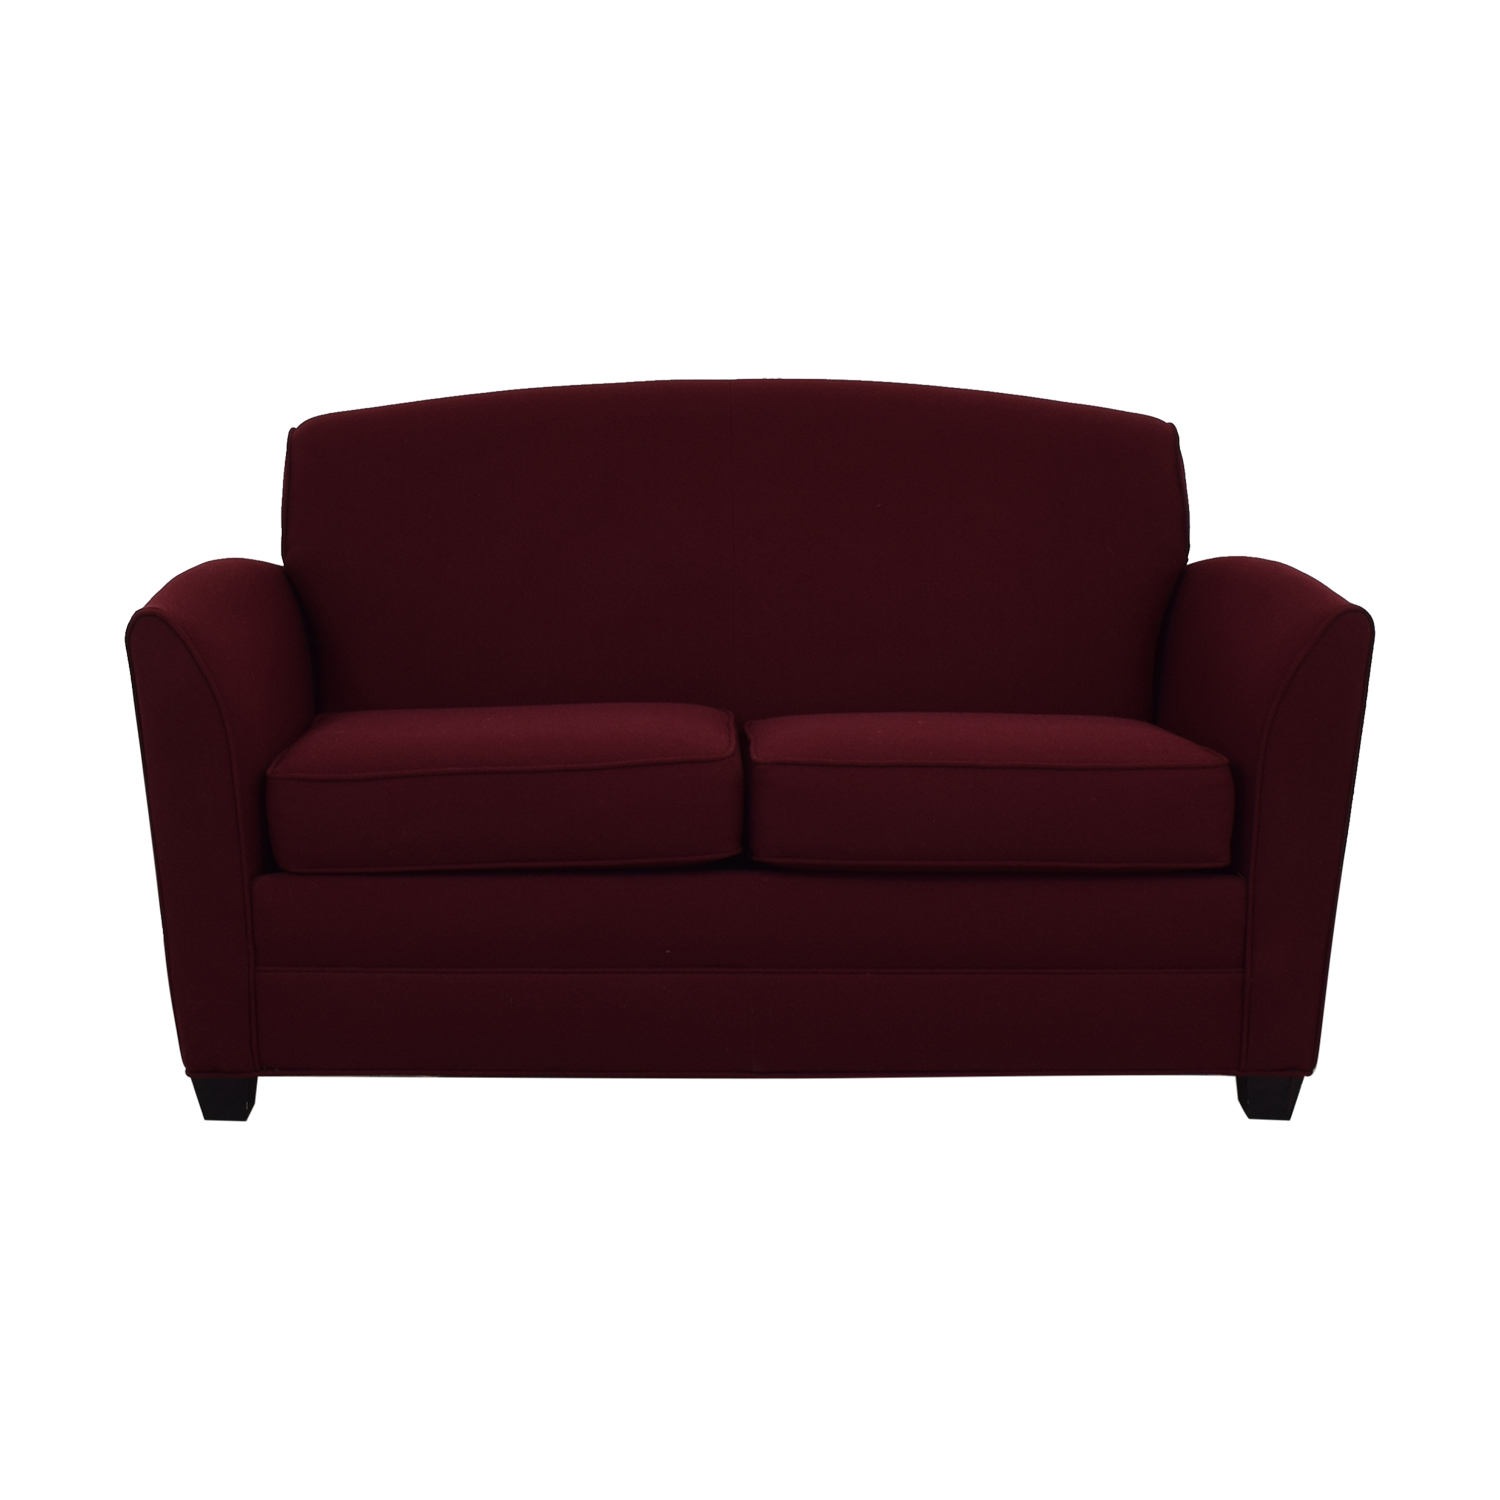 buy HON Furniture Two-Cushion Red Couch HON Furniture